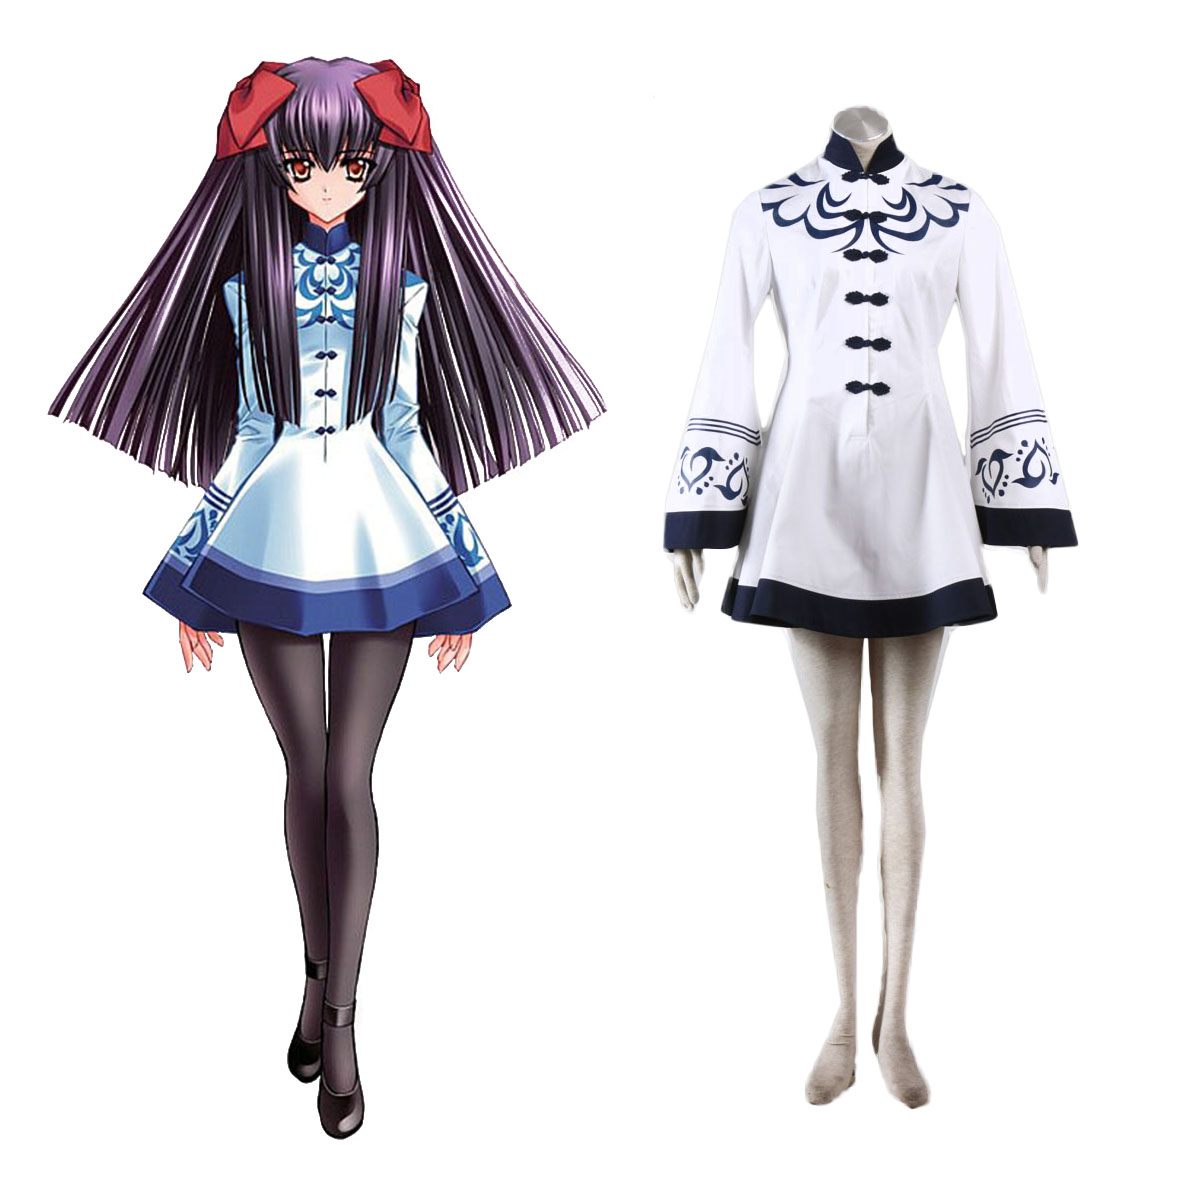 Touka Gettan Winter Female Uniform Cosplay Costumes AU